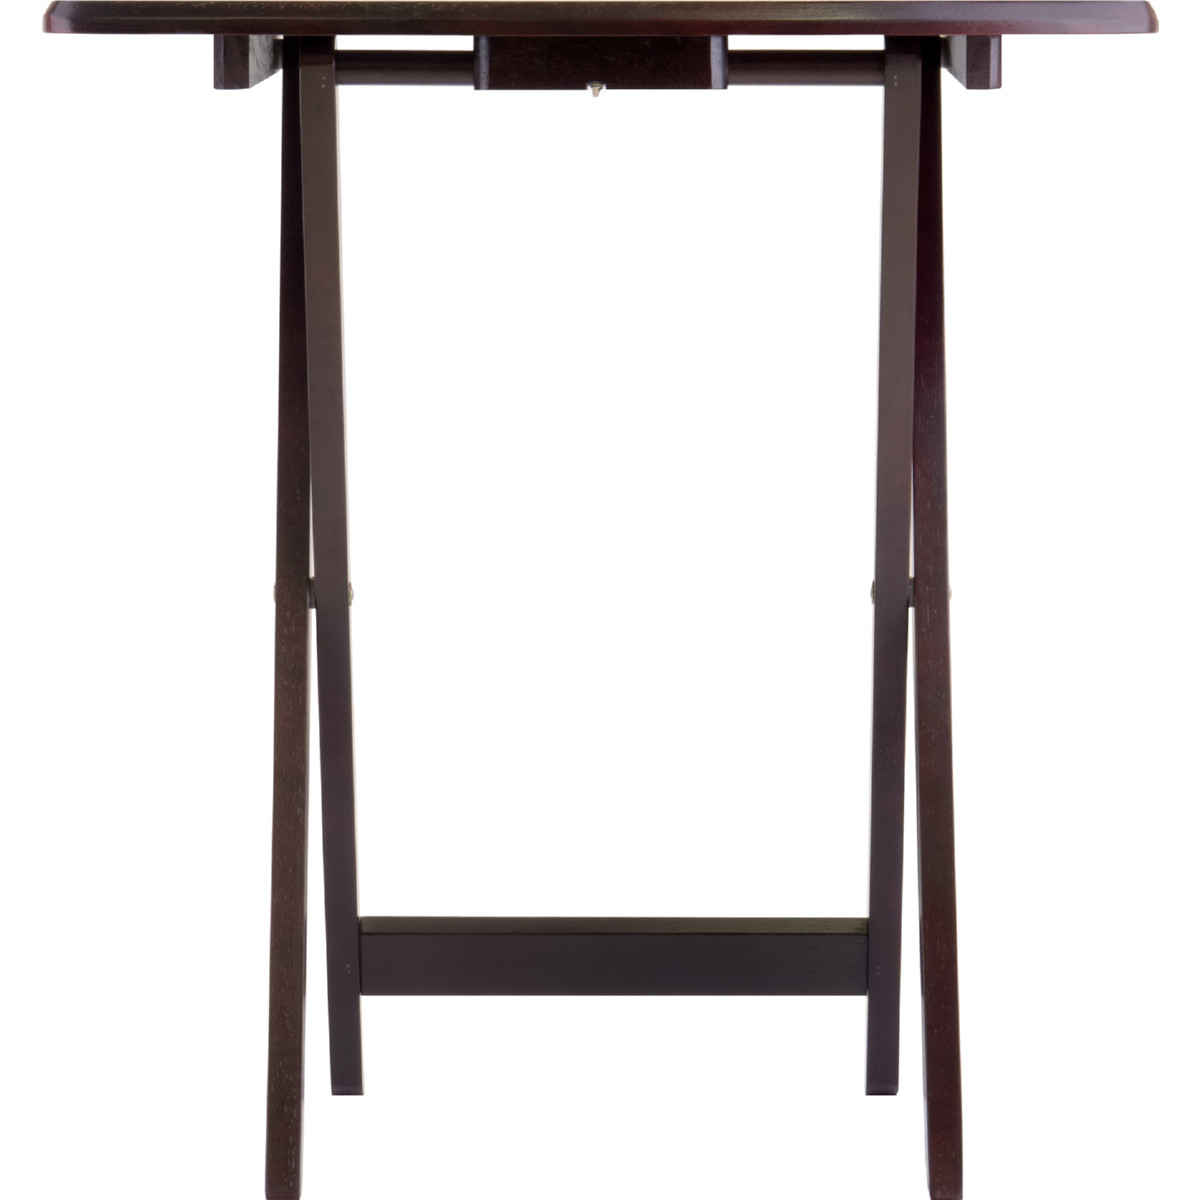 Winsome 92517 Dylan 5 Piece Oversize Snack TV Table Set in Espresso Wood